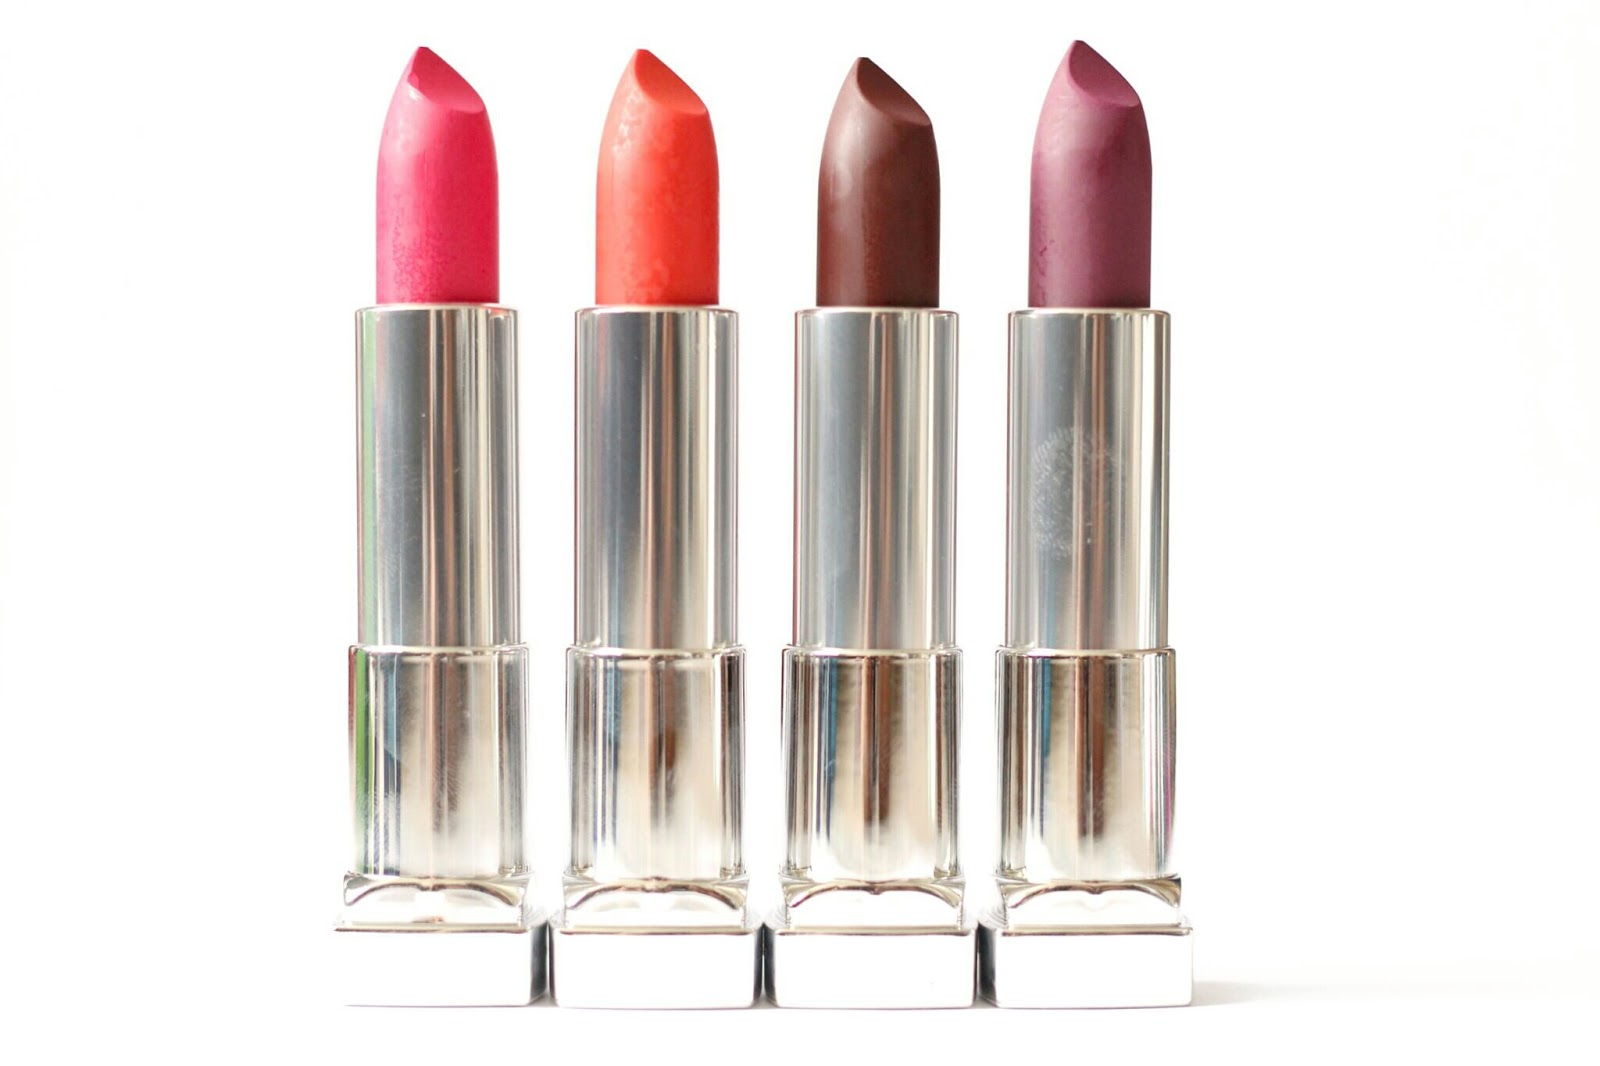 Maybelline Color Sensational Loaded Bolds NEW SHADES Autumn 2016